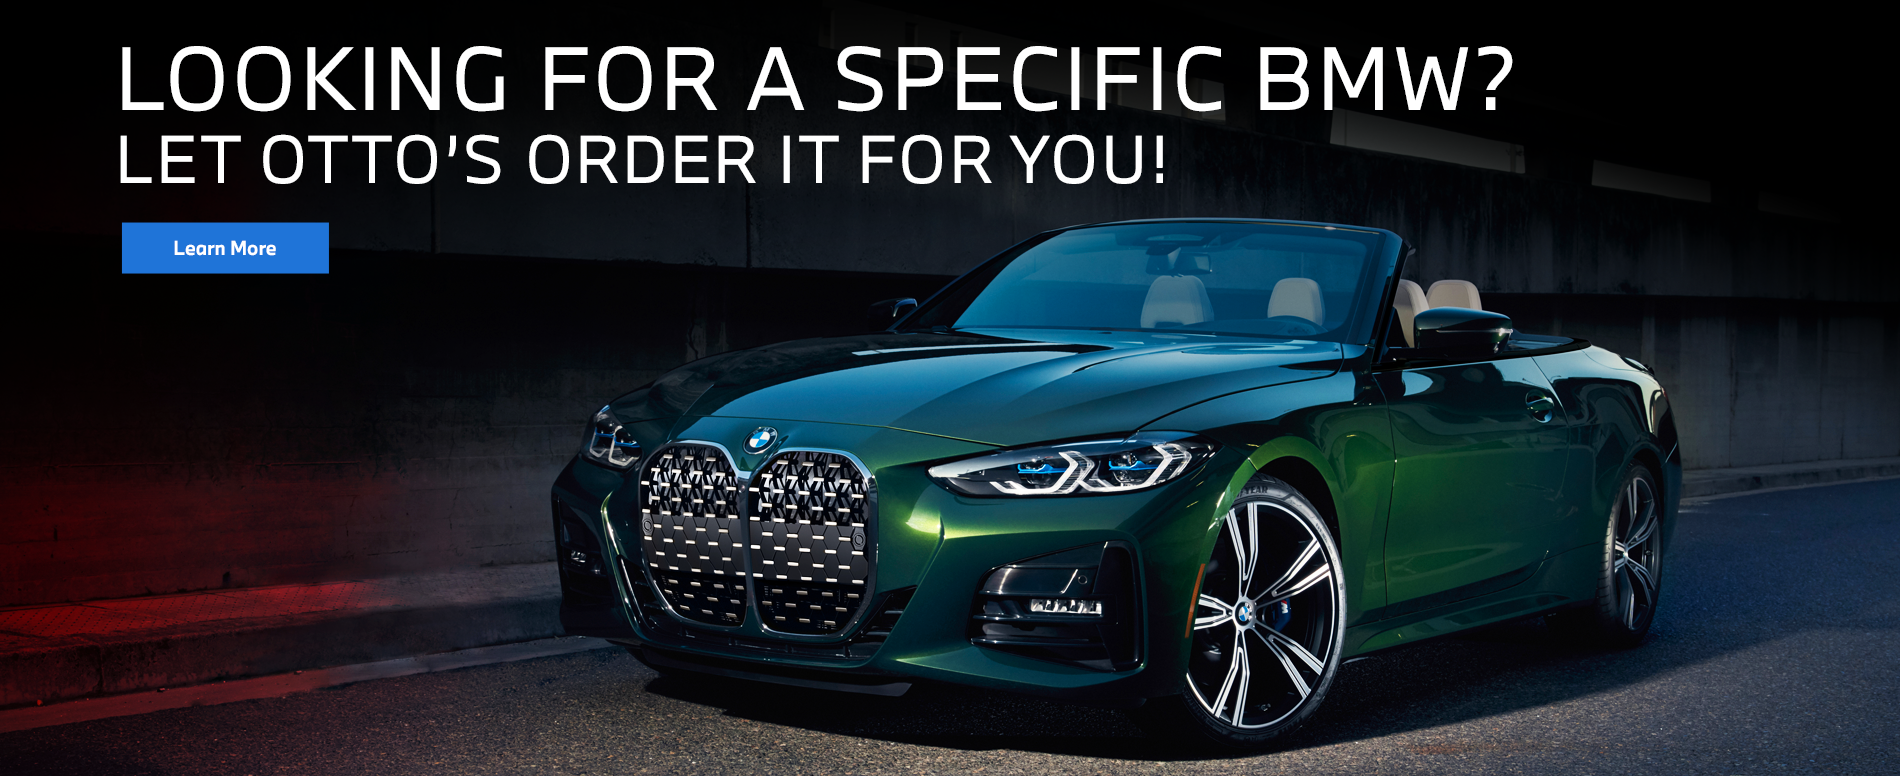 Let Otto's BMW order your next BMW!